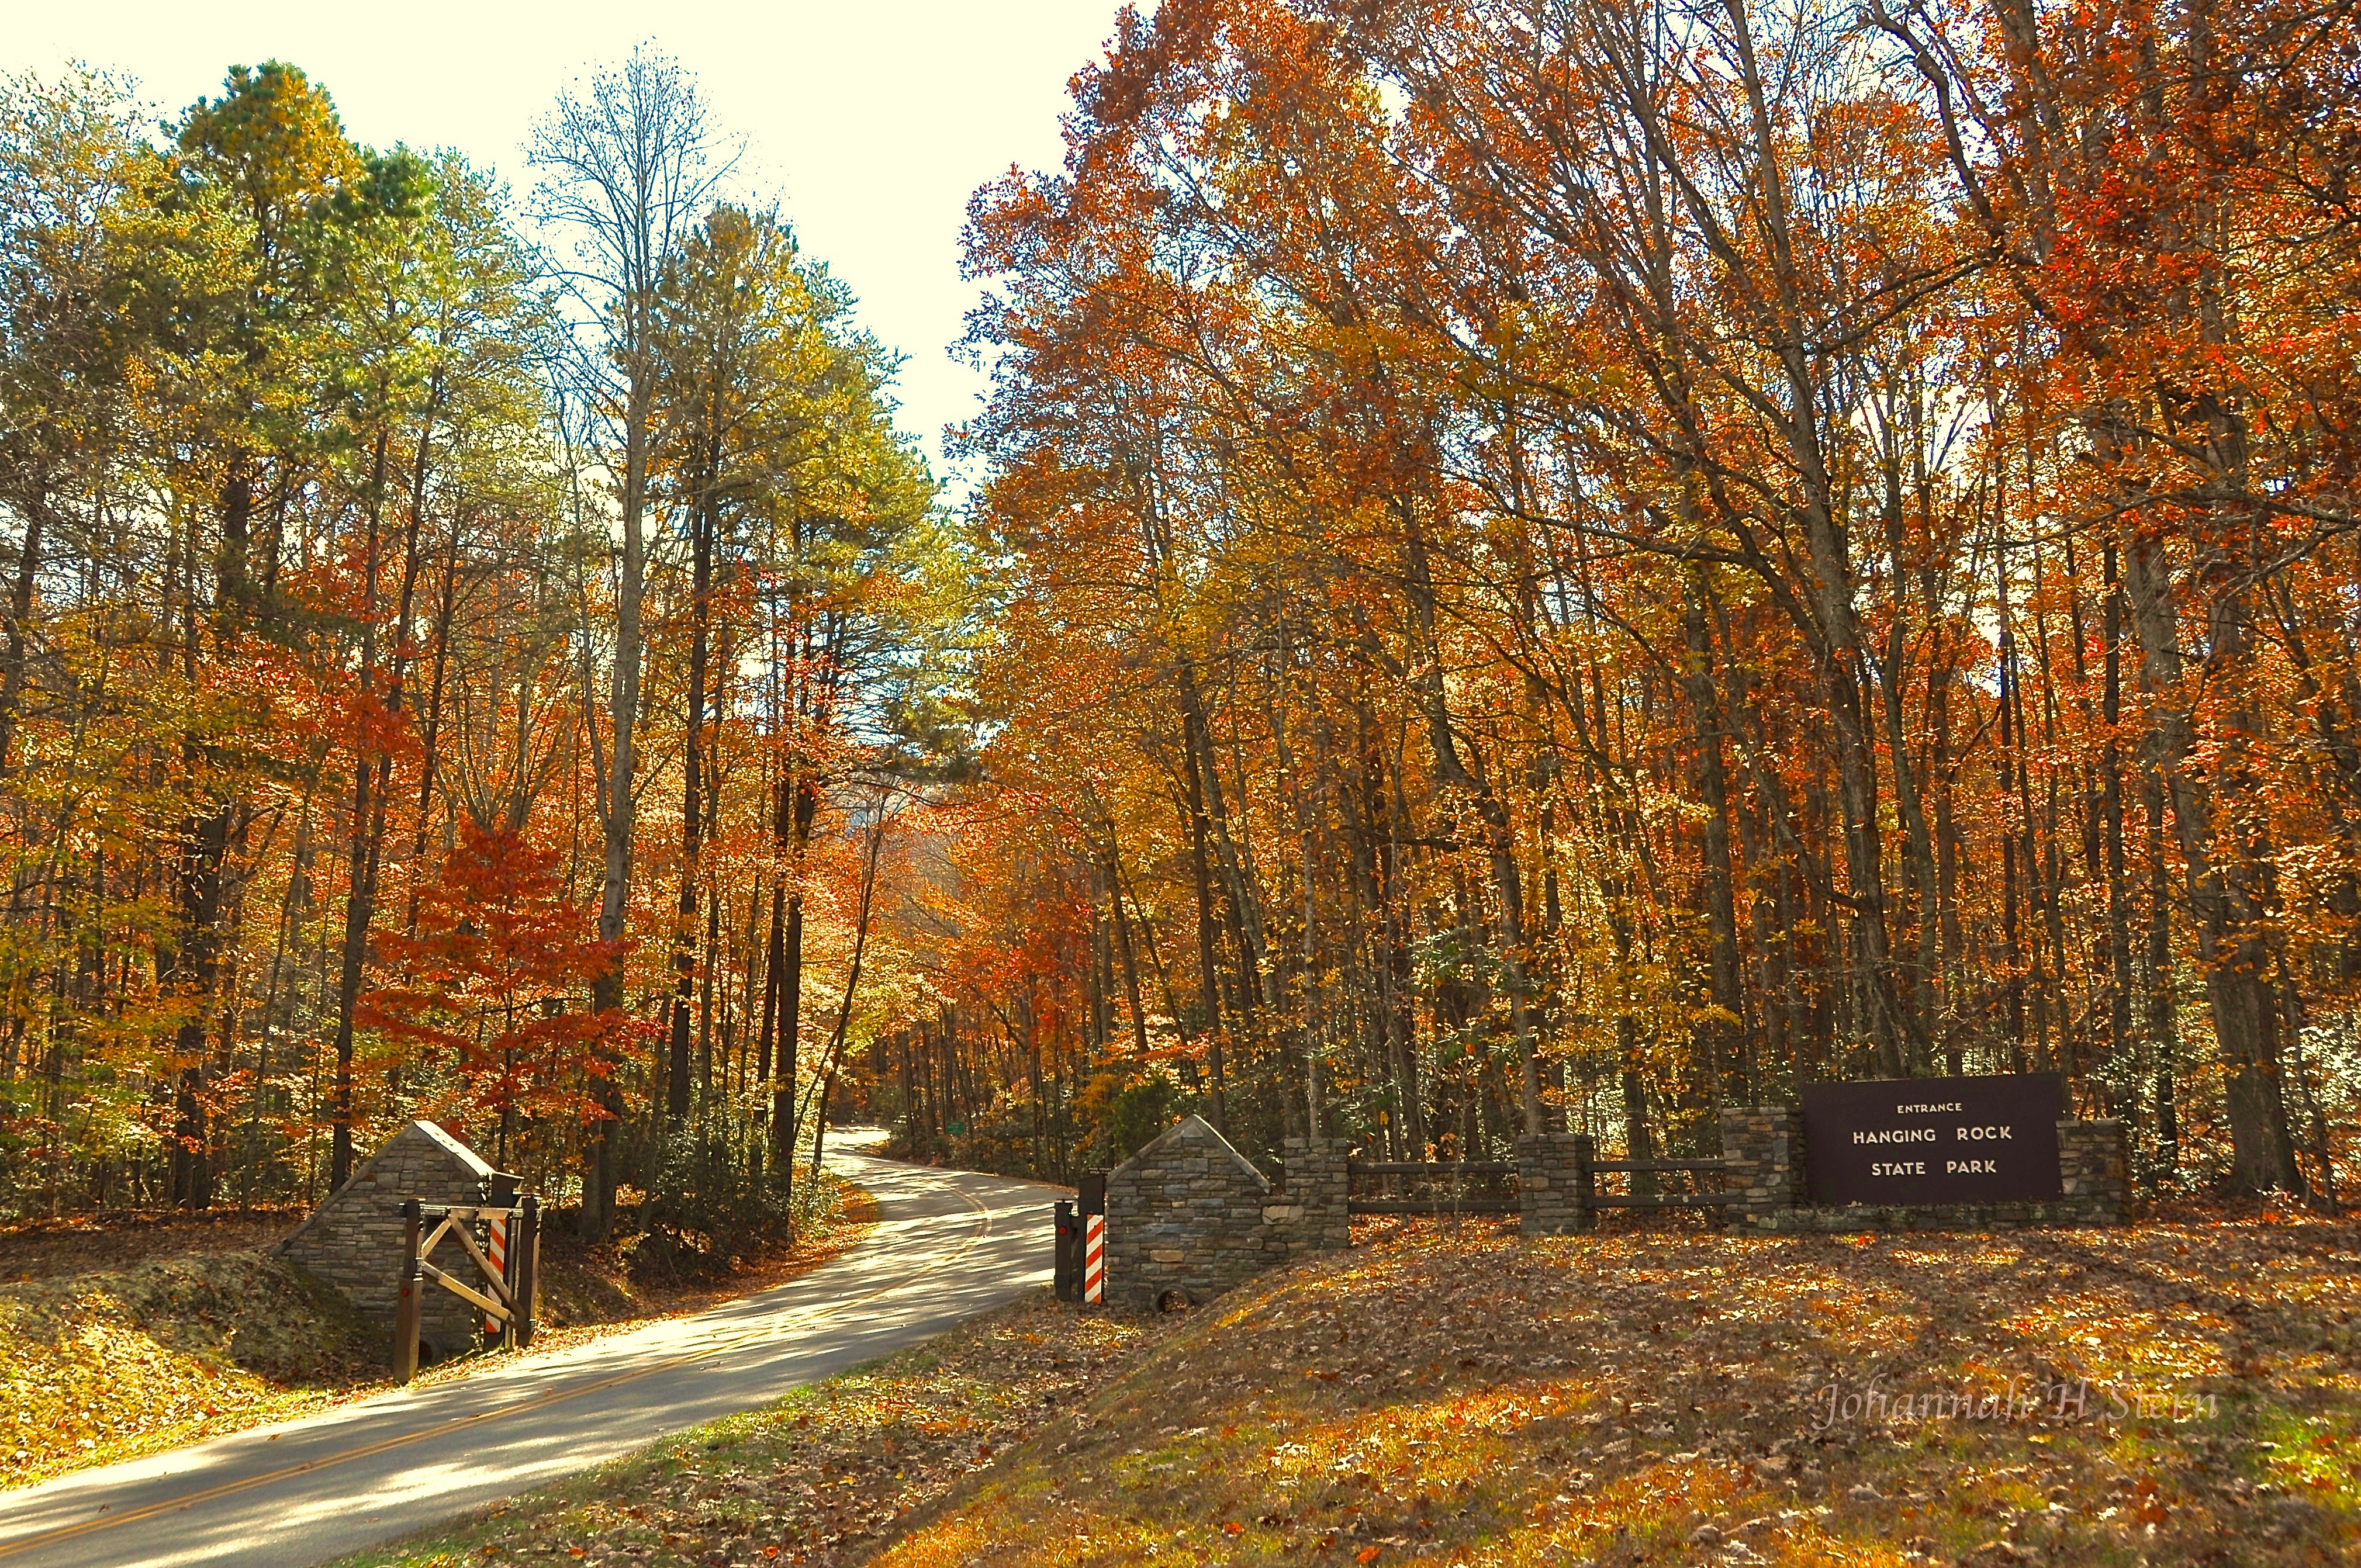 Hanging Rock State Park Entrance. Photo by Johannah H. Stern.